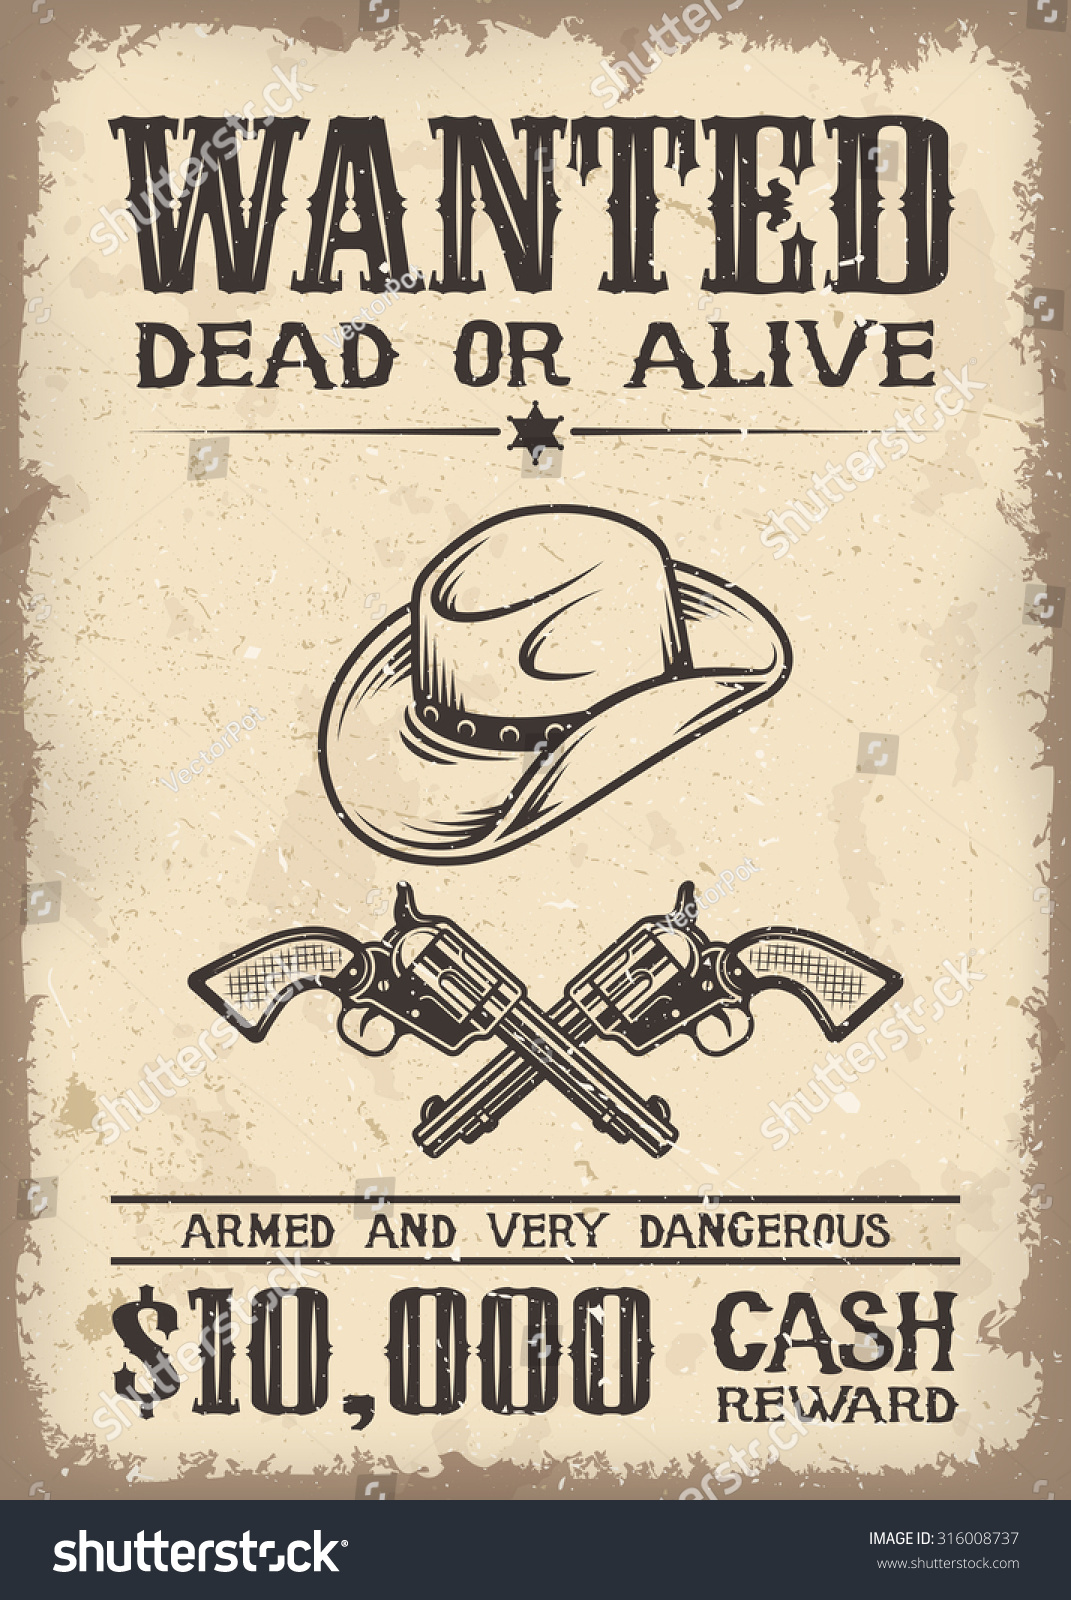 Vintage Wild West Wanted Poster Old Stock Vector 316008737 ...